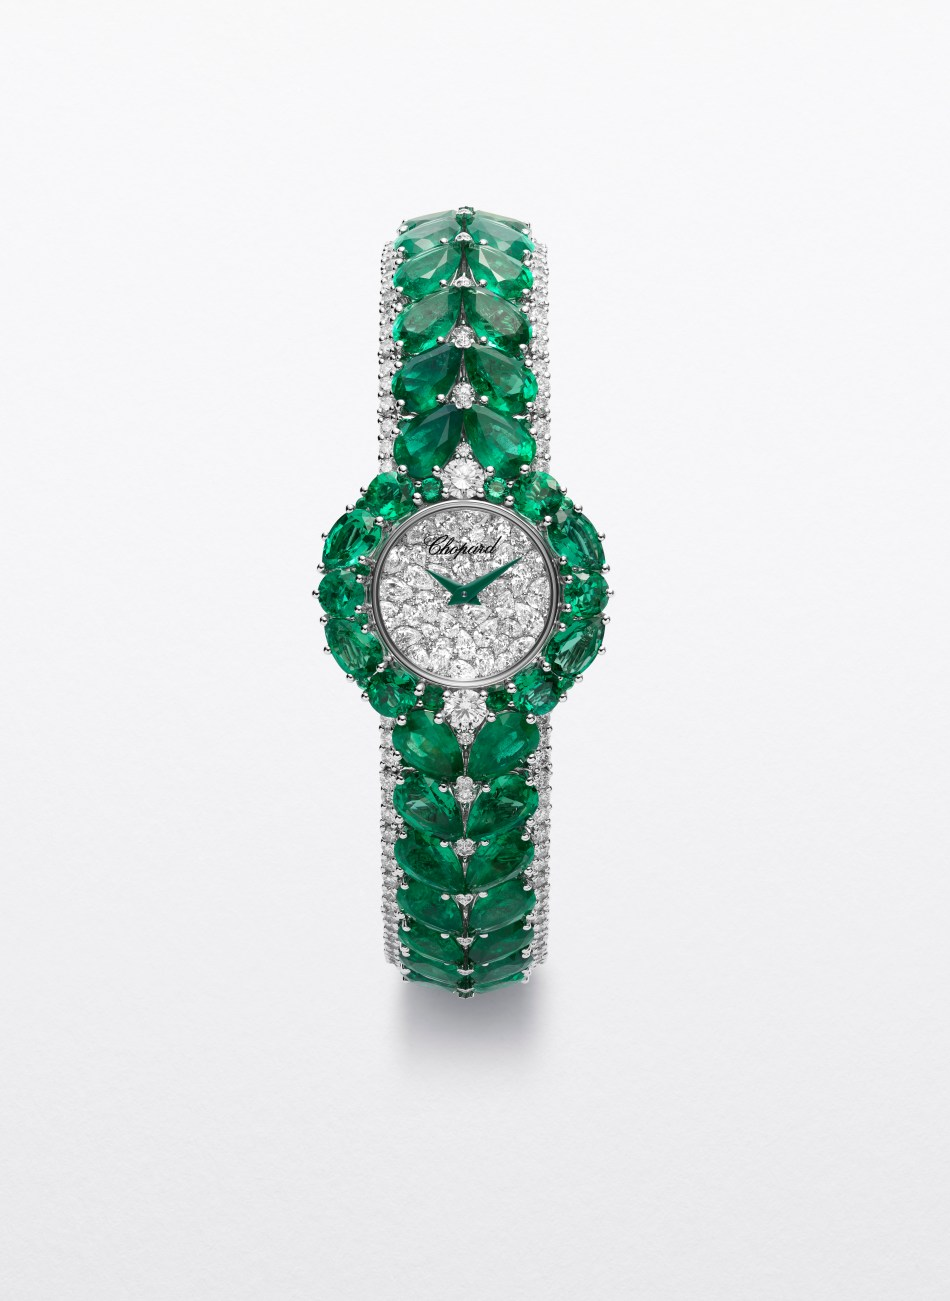 Chopard Red Carpet Collection 2021